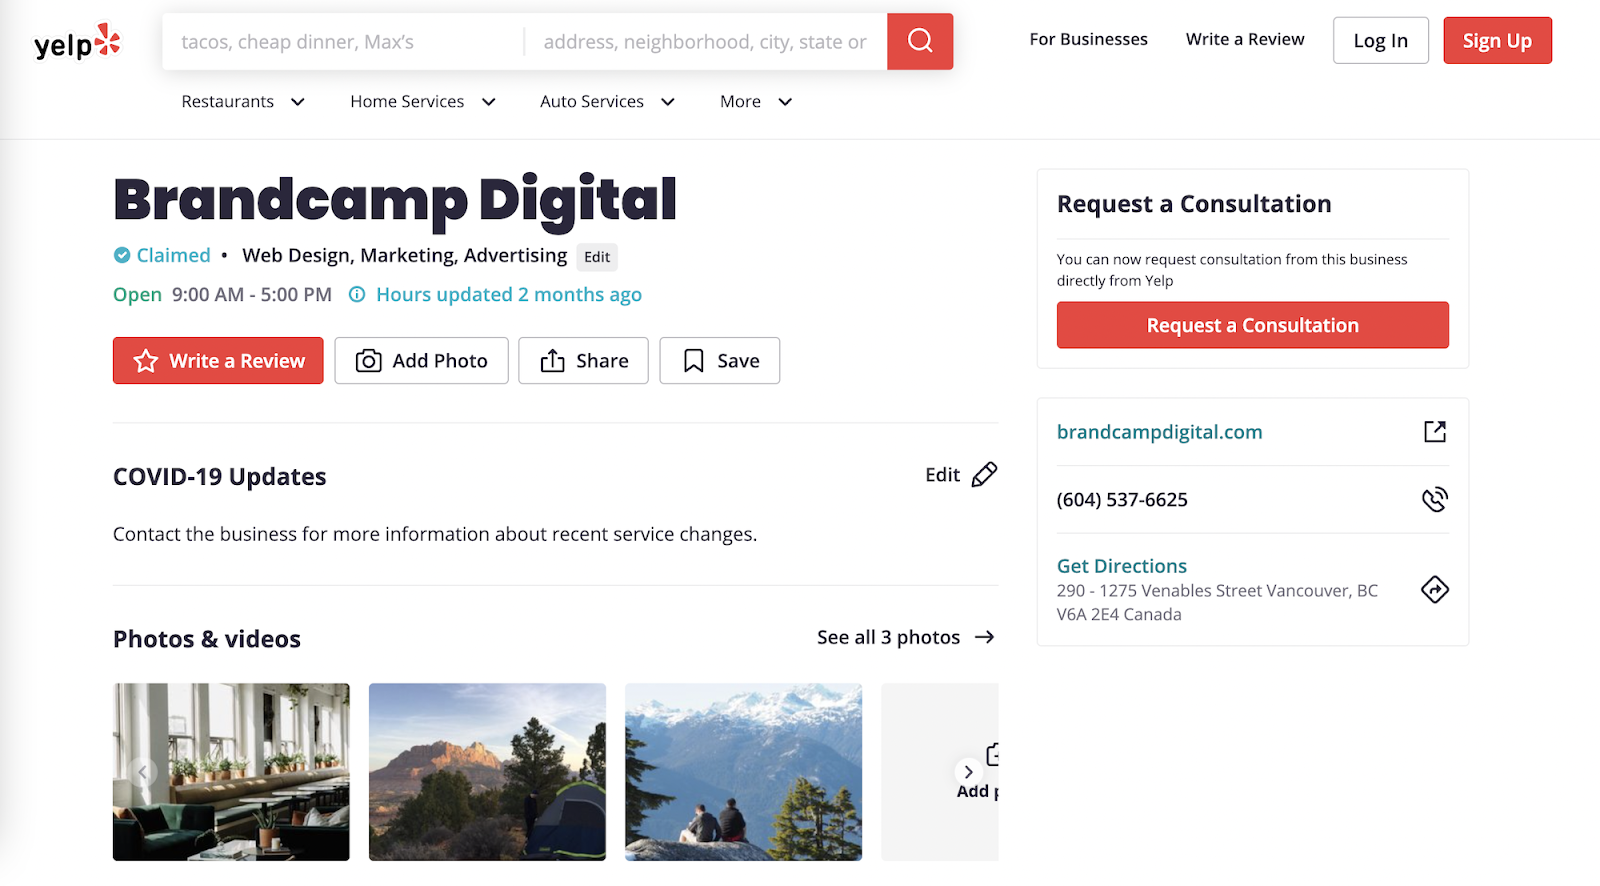 brandcamp digital yelp listing front page